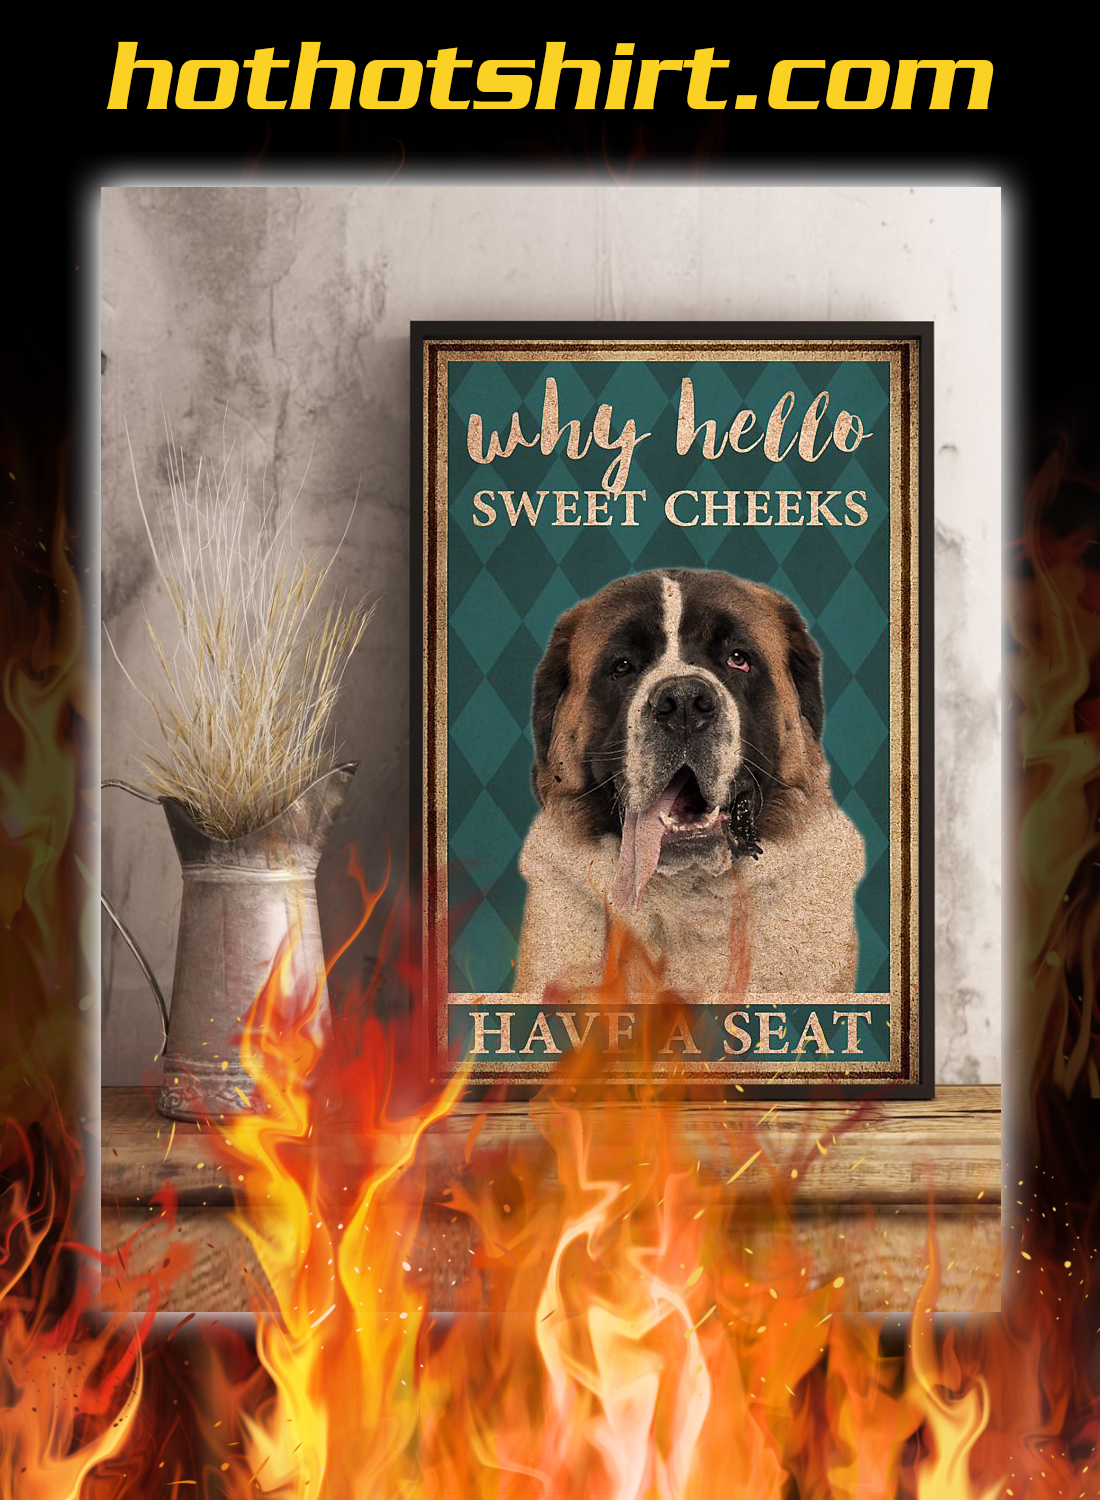 St bernard why hello sweet cheeks have a seat poster 2